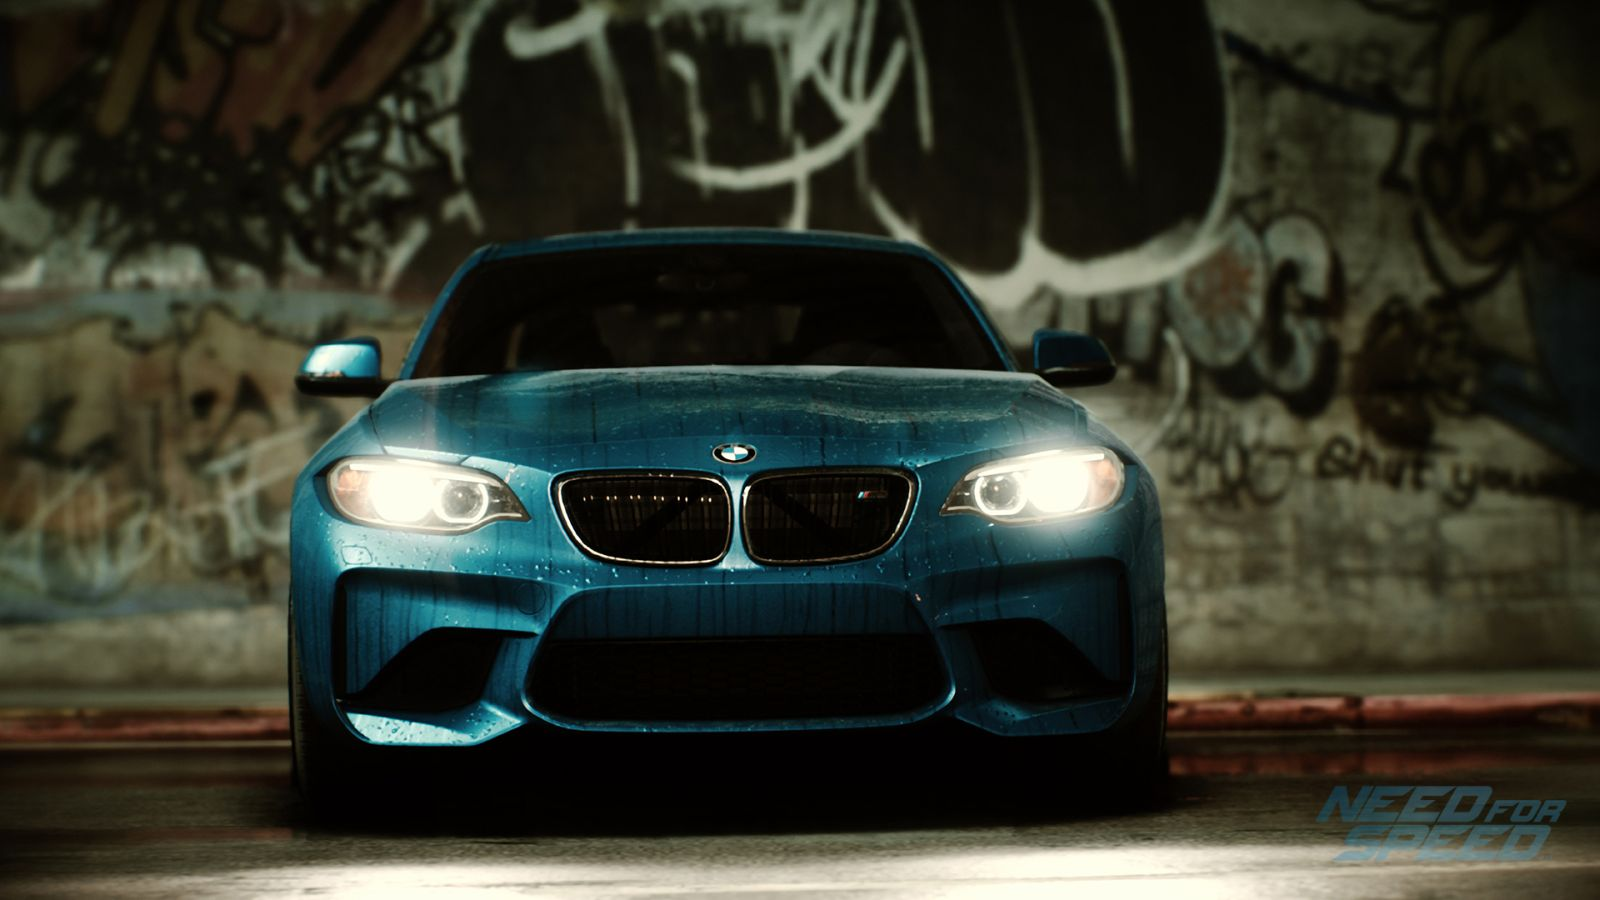 NFS review 2